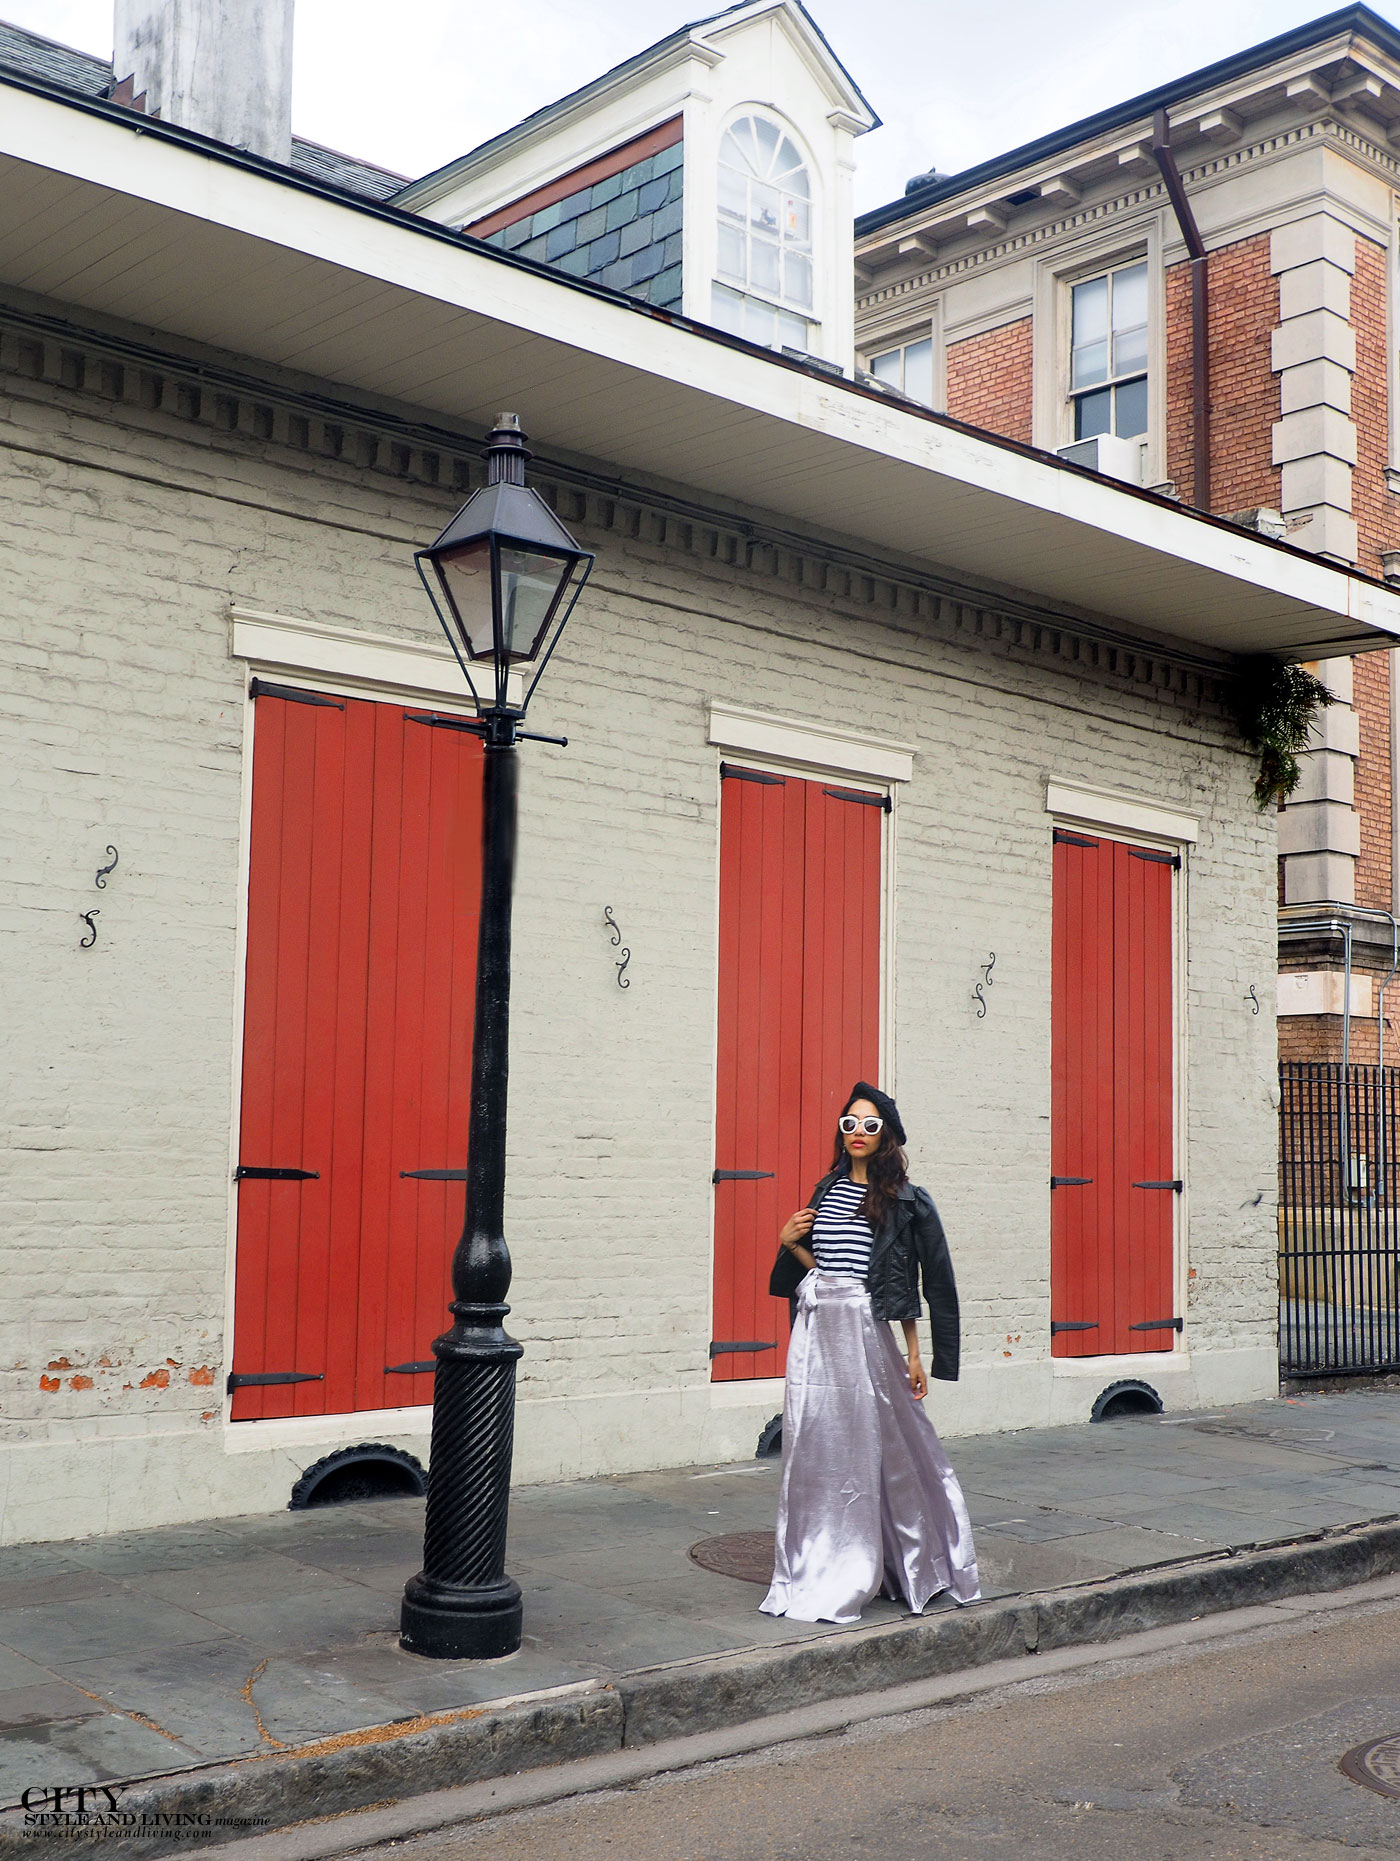 City style and living magazine The Editors Notebook style fashion blogger Shivana Maharaj new orleans french quarter wearing silver skirt french style walking by street lamp